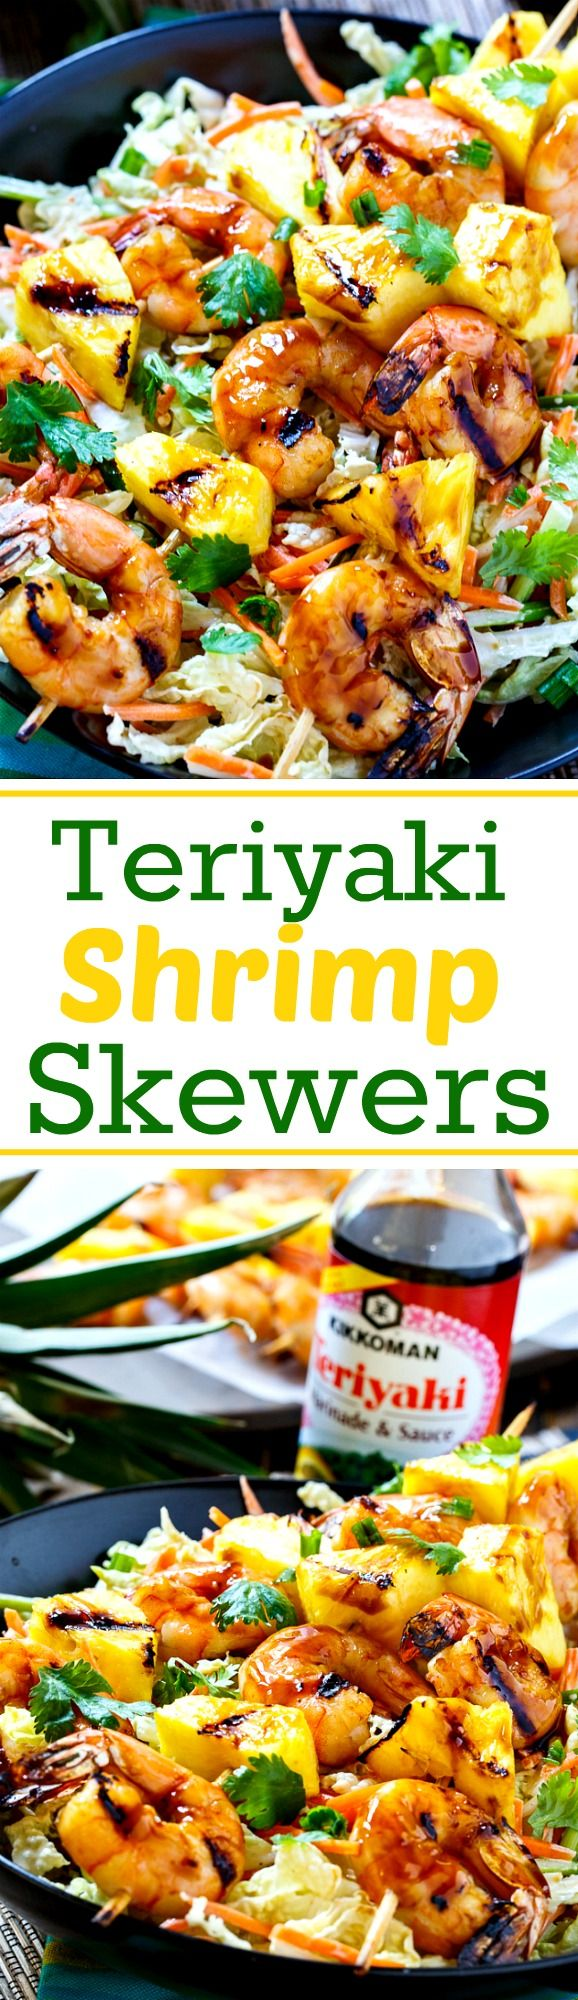 Grilled Teriyaki Shrimp Skewers with Asian-style Slaw. An easy summer meal!